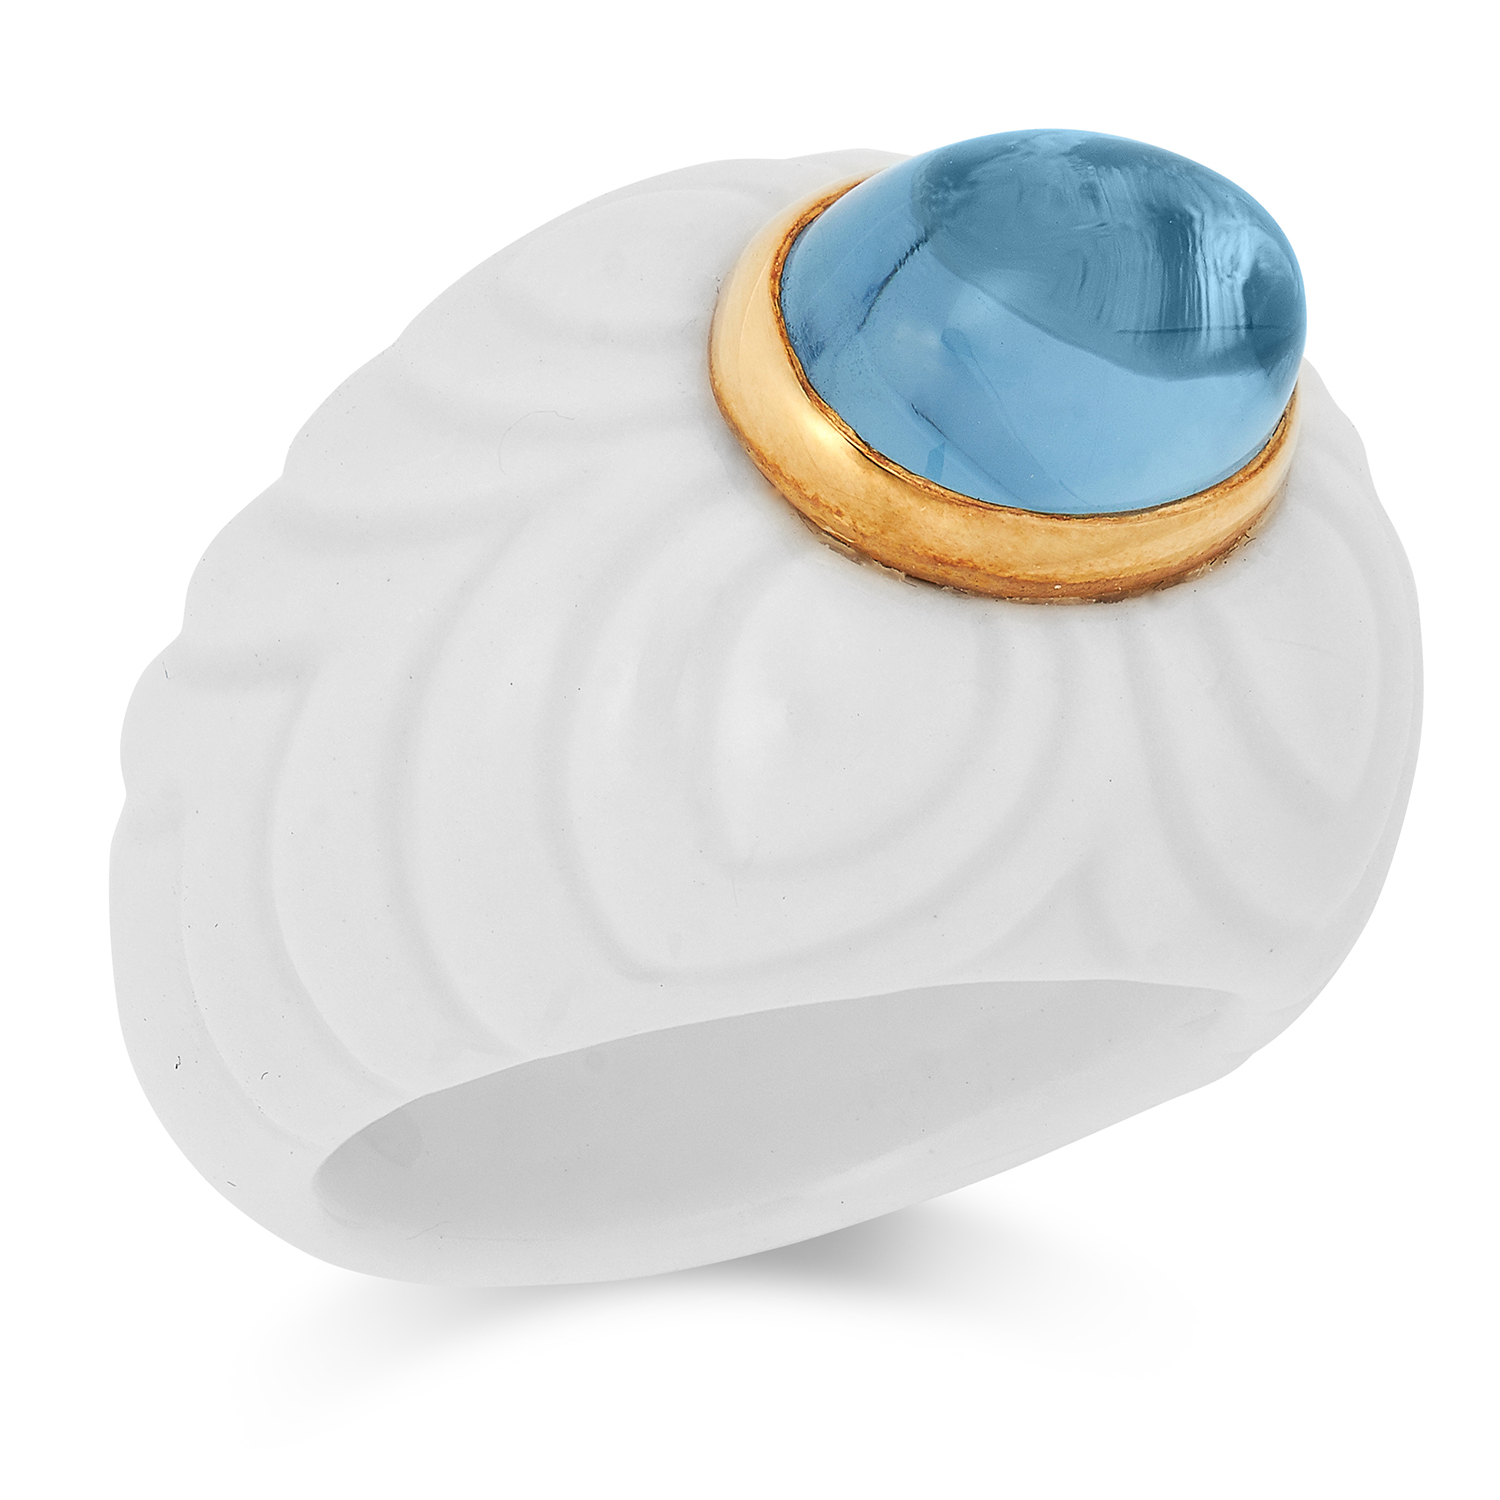 TOPAZ CHANDRA RING, BULGARI with a cabochon topaz on a ceramic band, size L / 5.5, 10.5g.